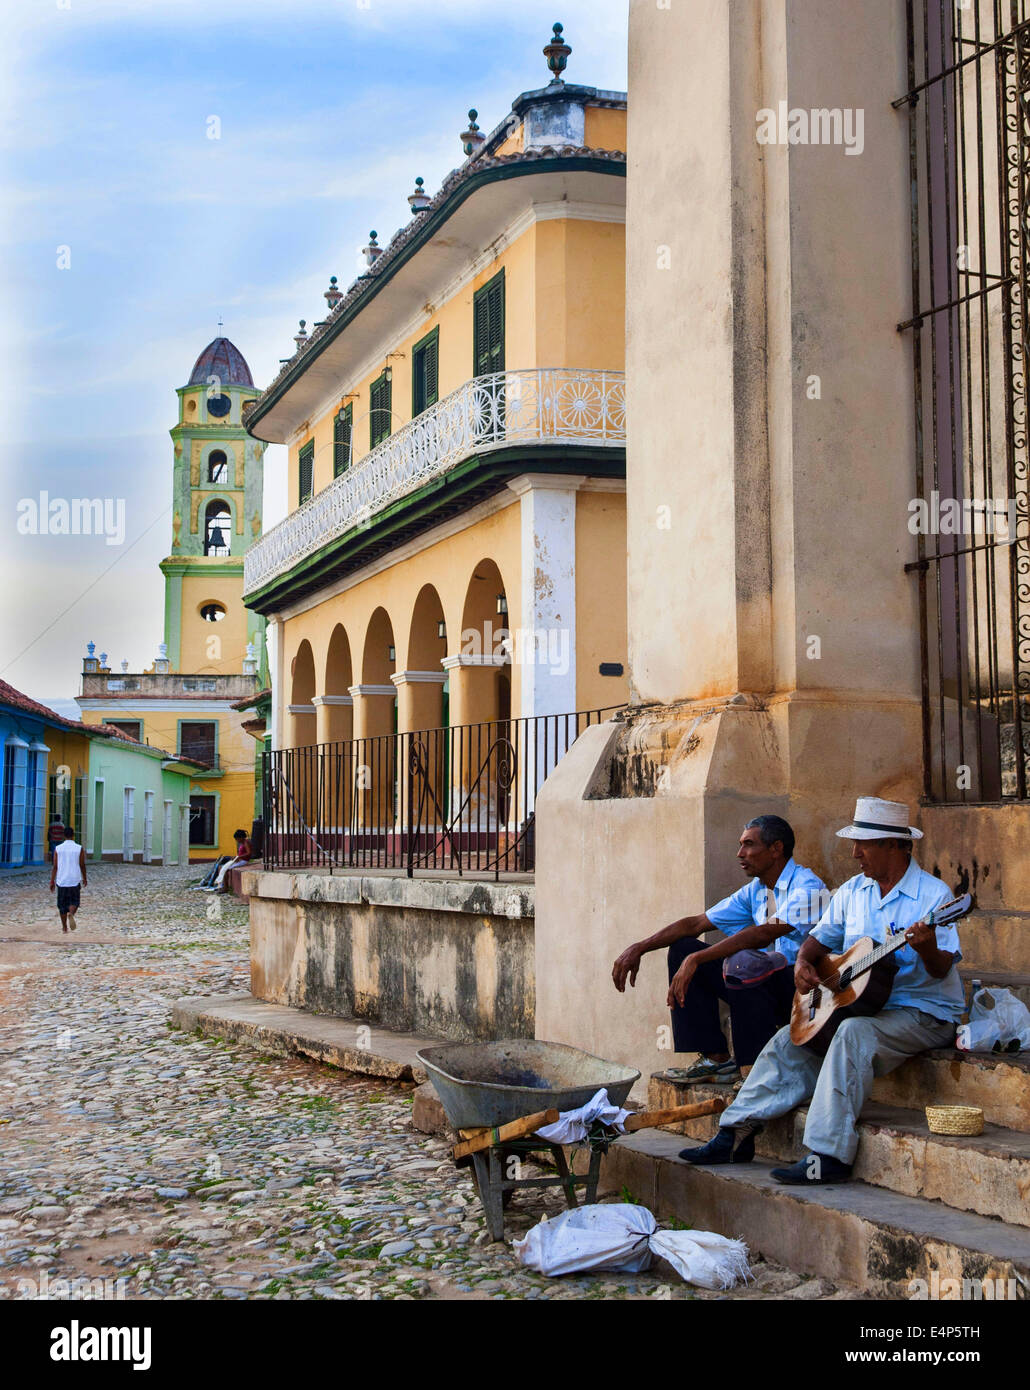 A guitarist performs a musical serenades for passersby in Trinidad, Cuba - Stock Image